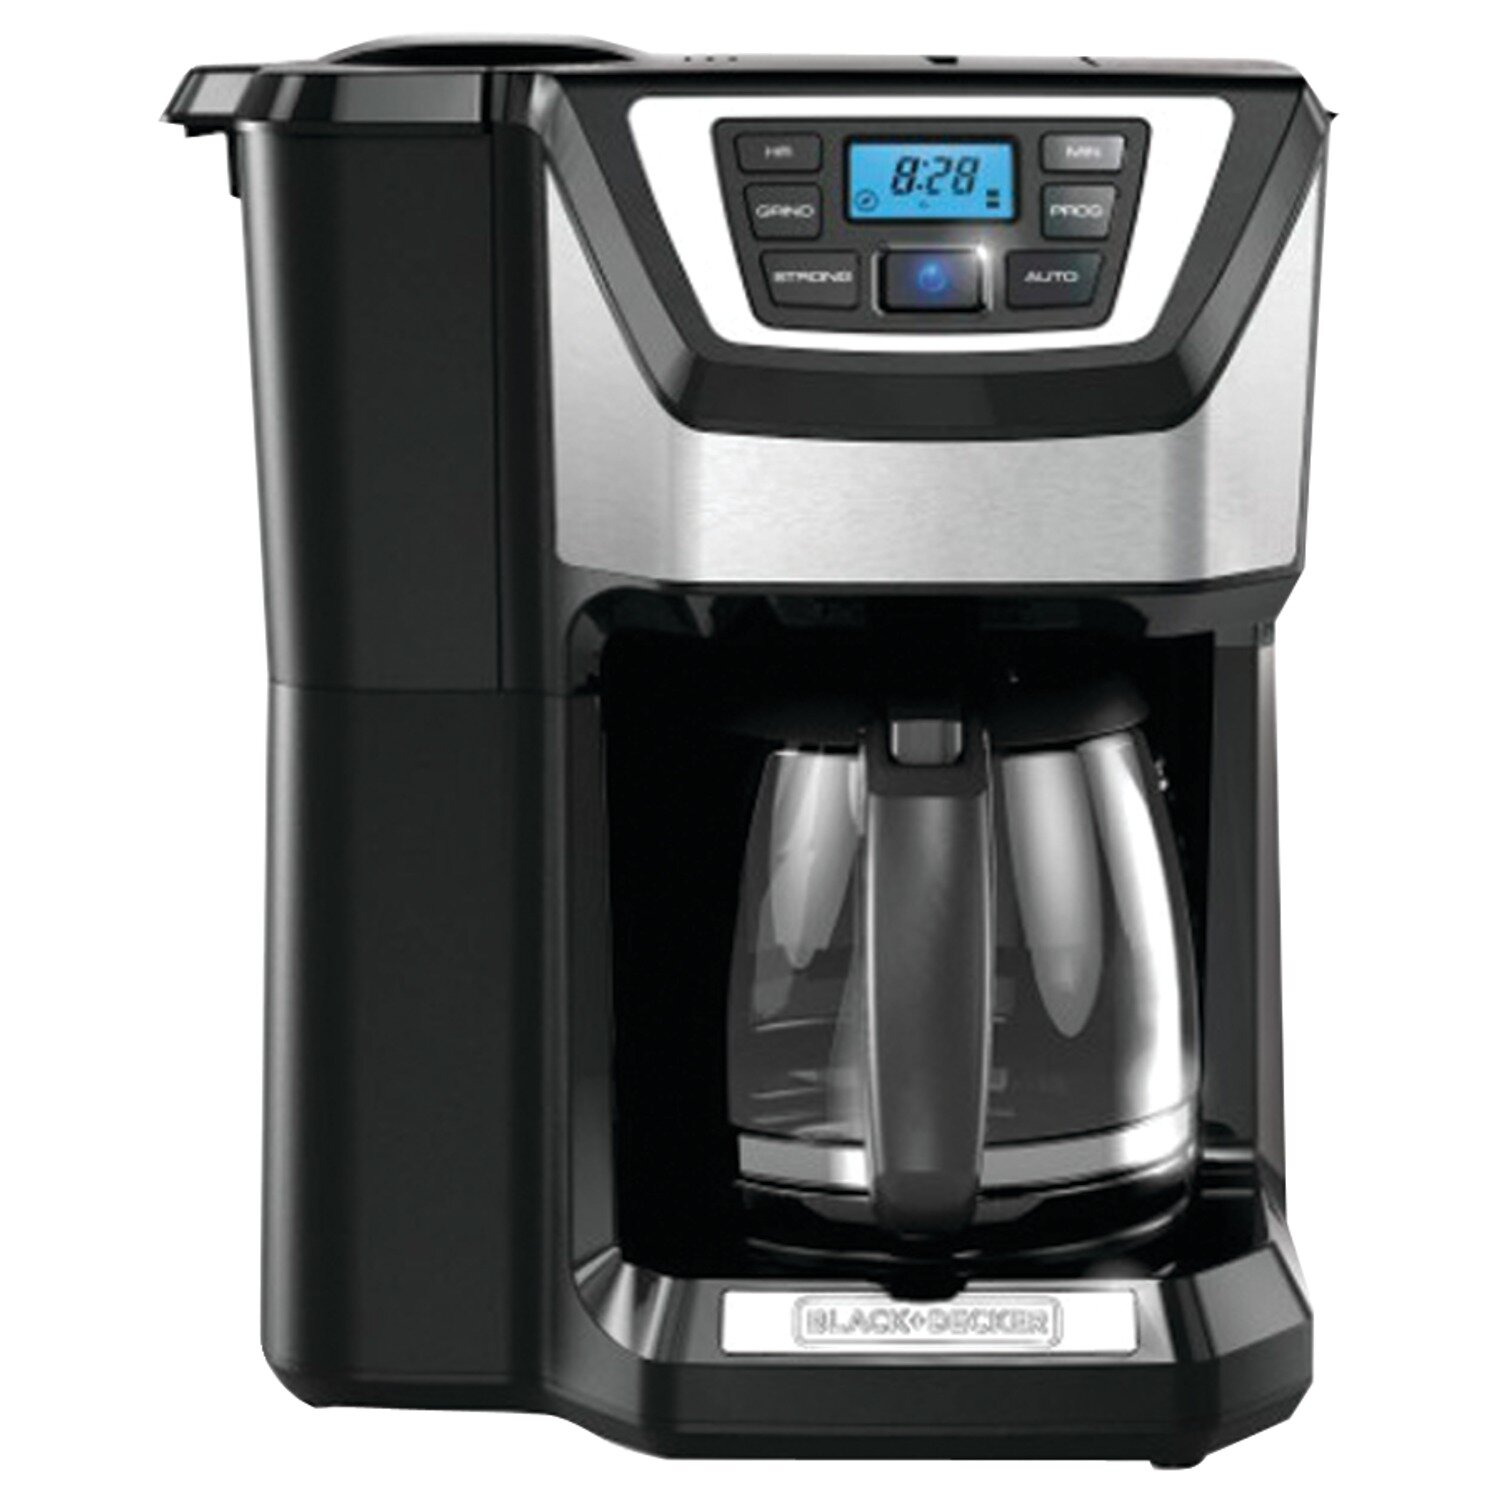 Coffee Maker Black And Decker 12 Cup : Black & Decker 12 Cup Mill and Brew Coffee Maker & Reviews Wayfair